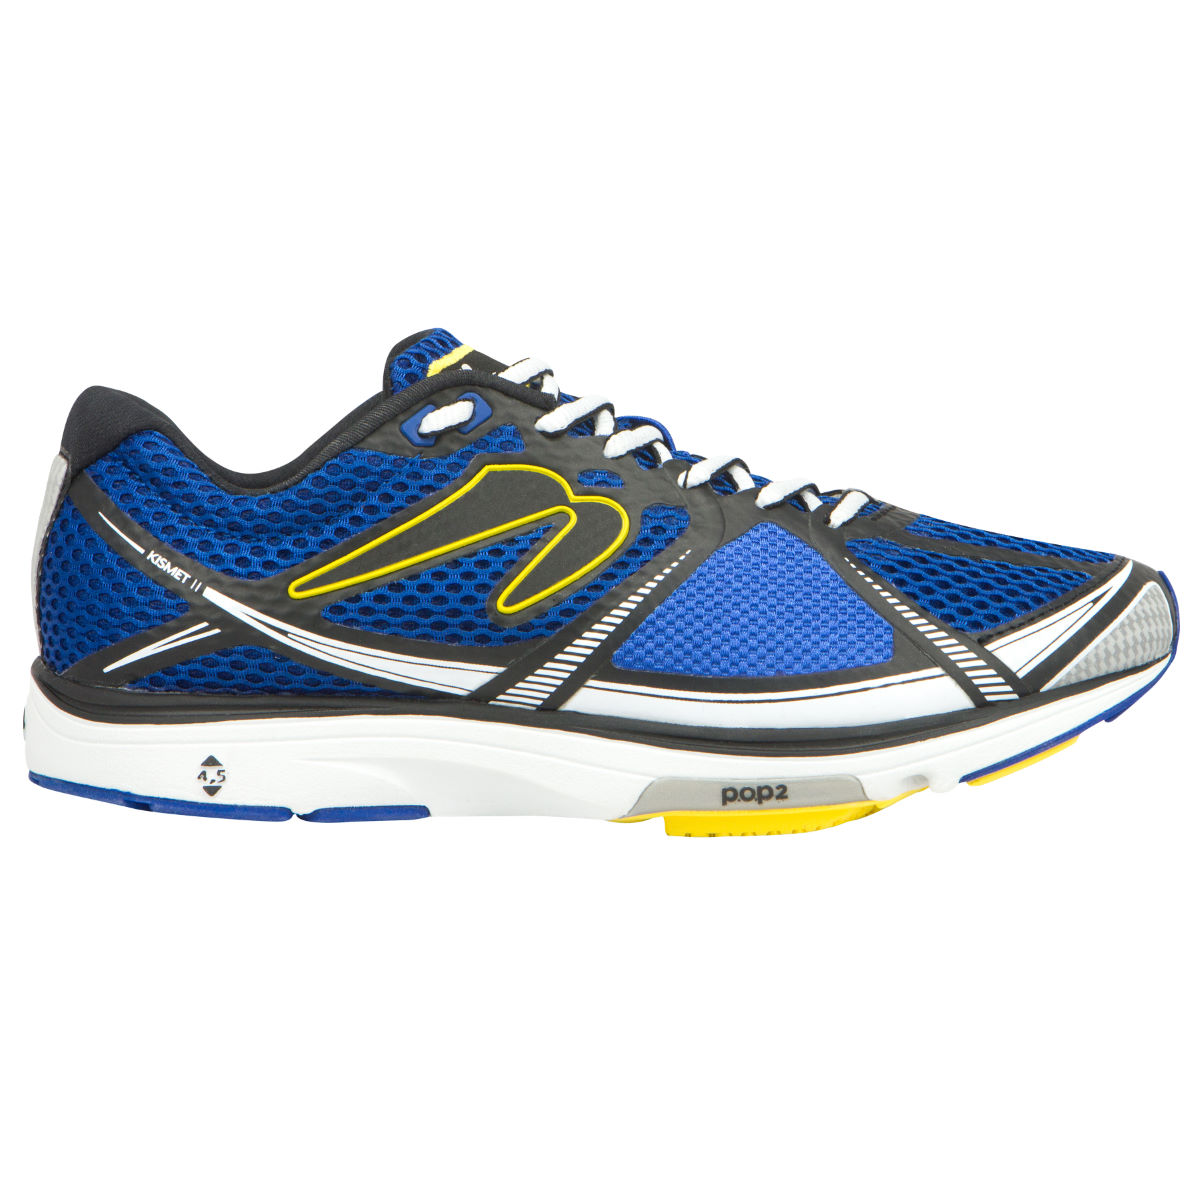 Chaussures Newton Running Kismet II (AH16) - 7 UK White/Yellow Chaussures de running amorties